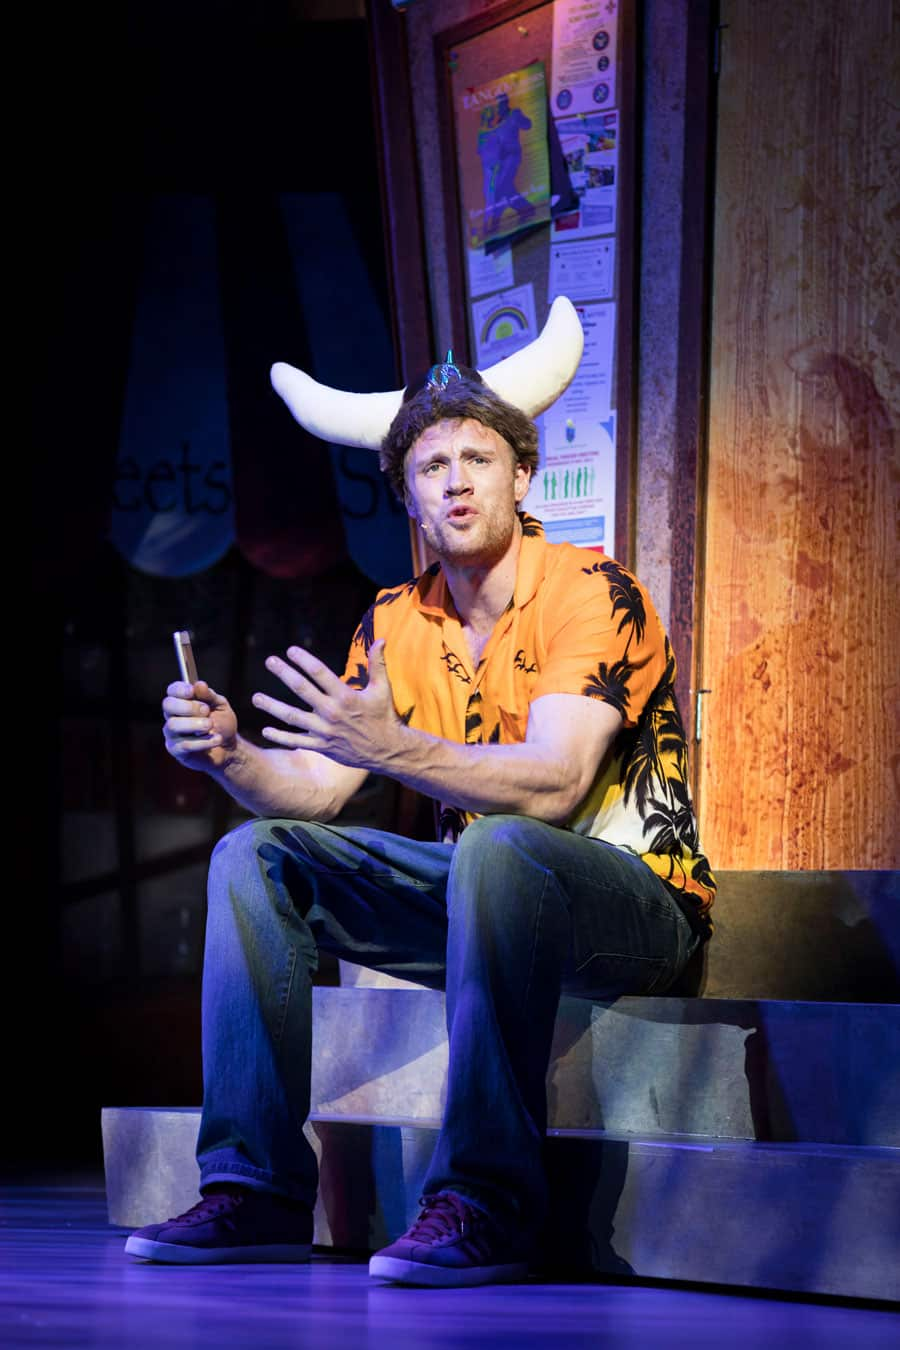 Andrew Flintoff in Fat Friends the musical